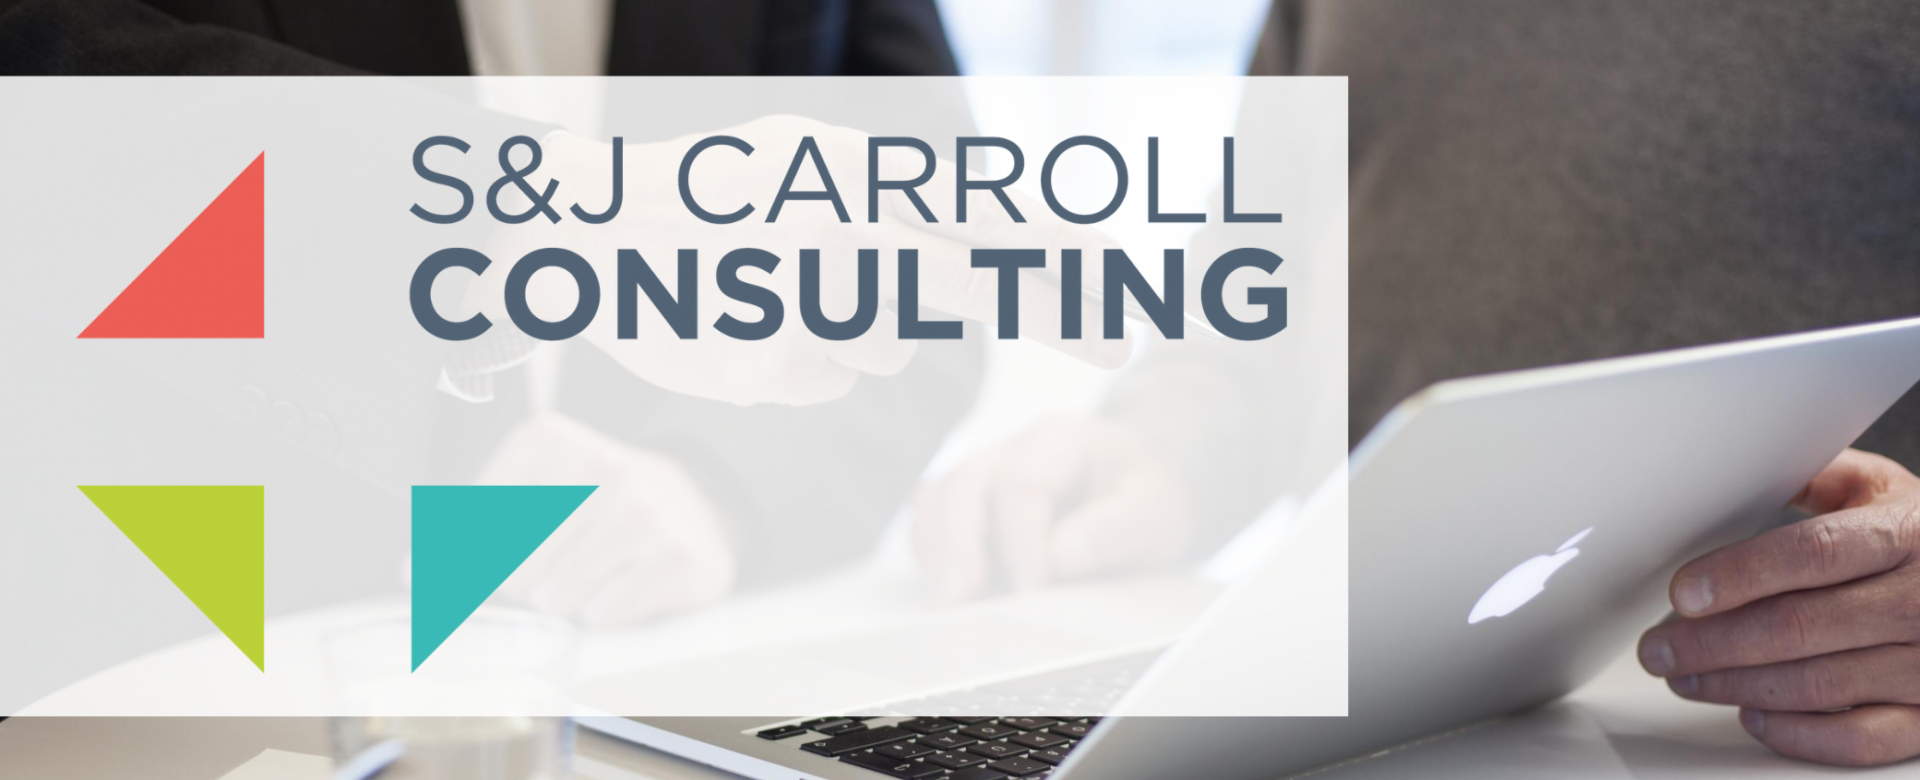 S&J Carroll Consulting